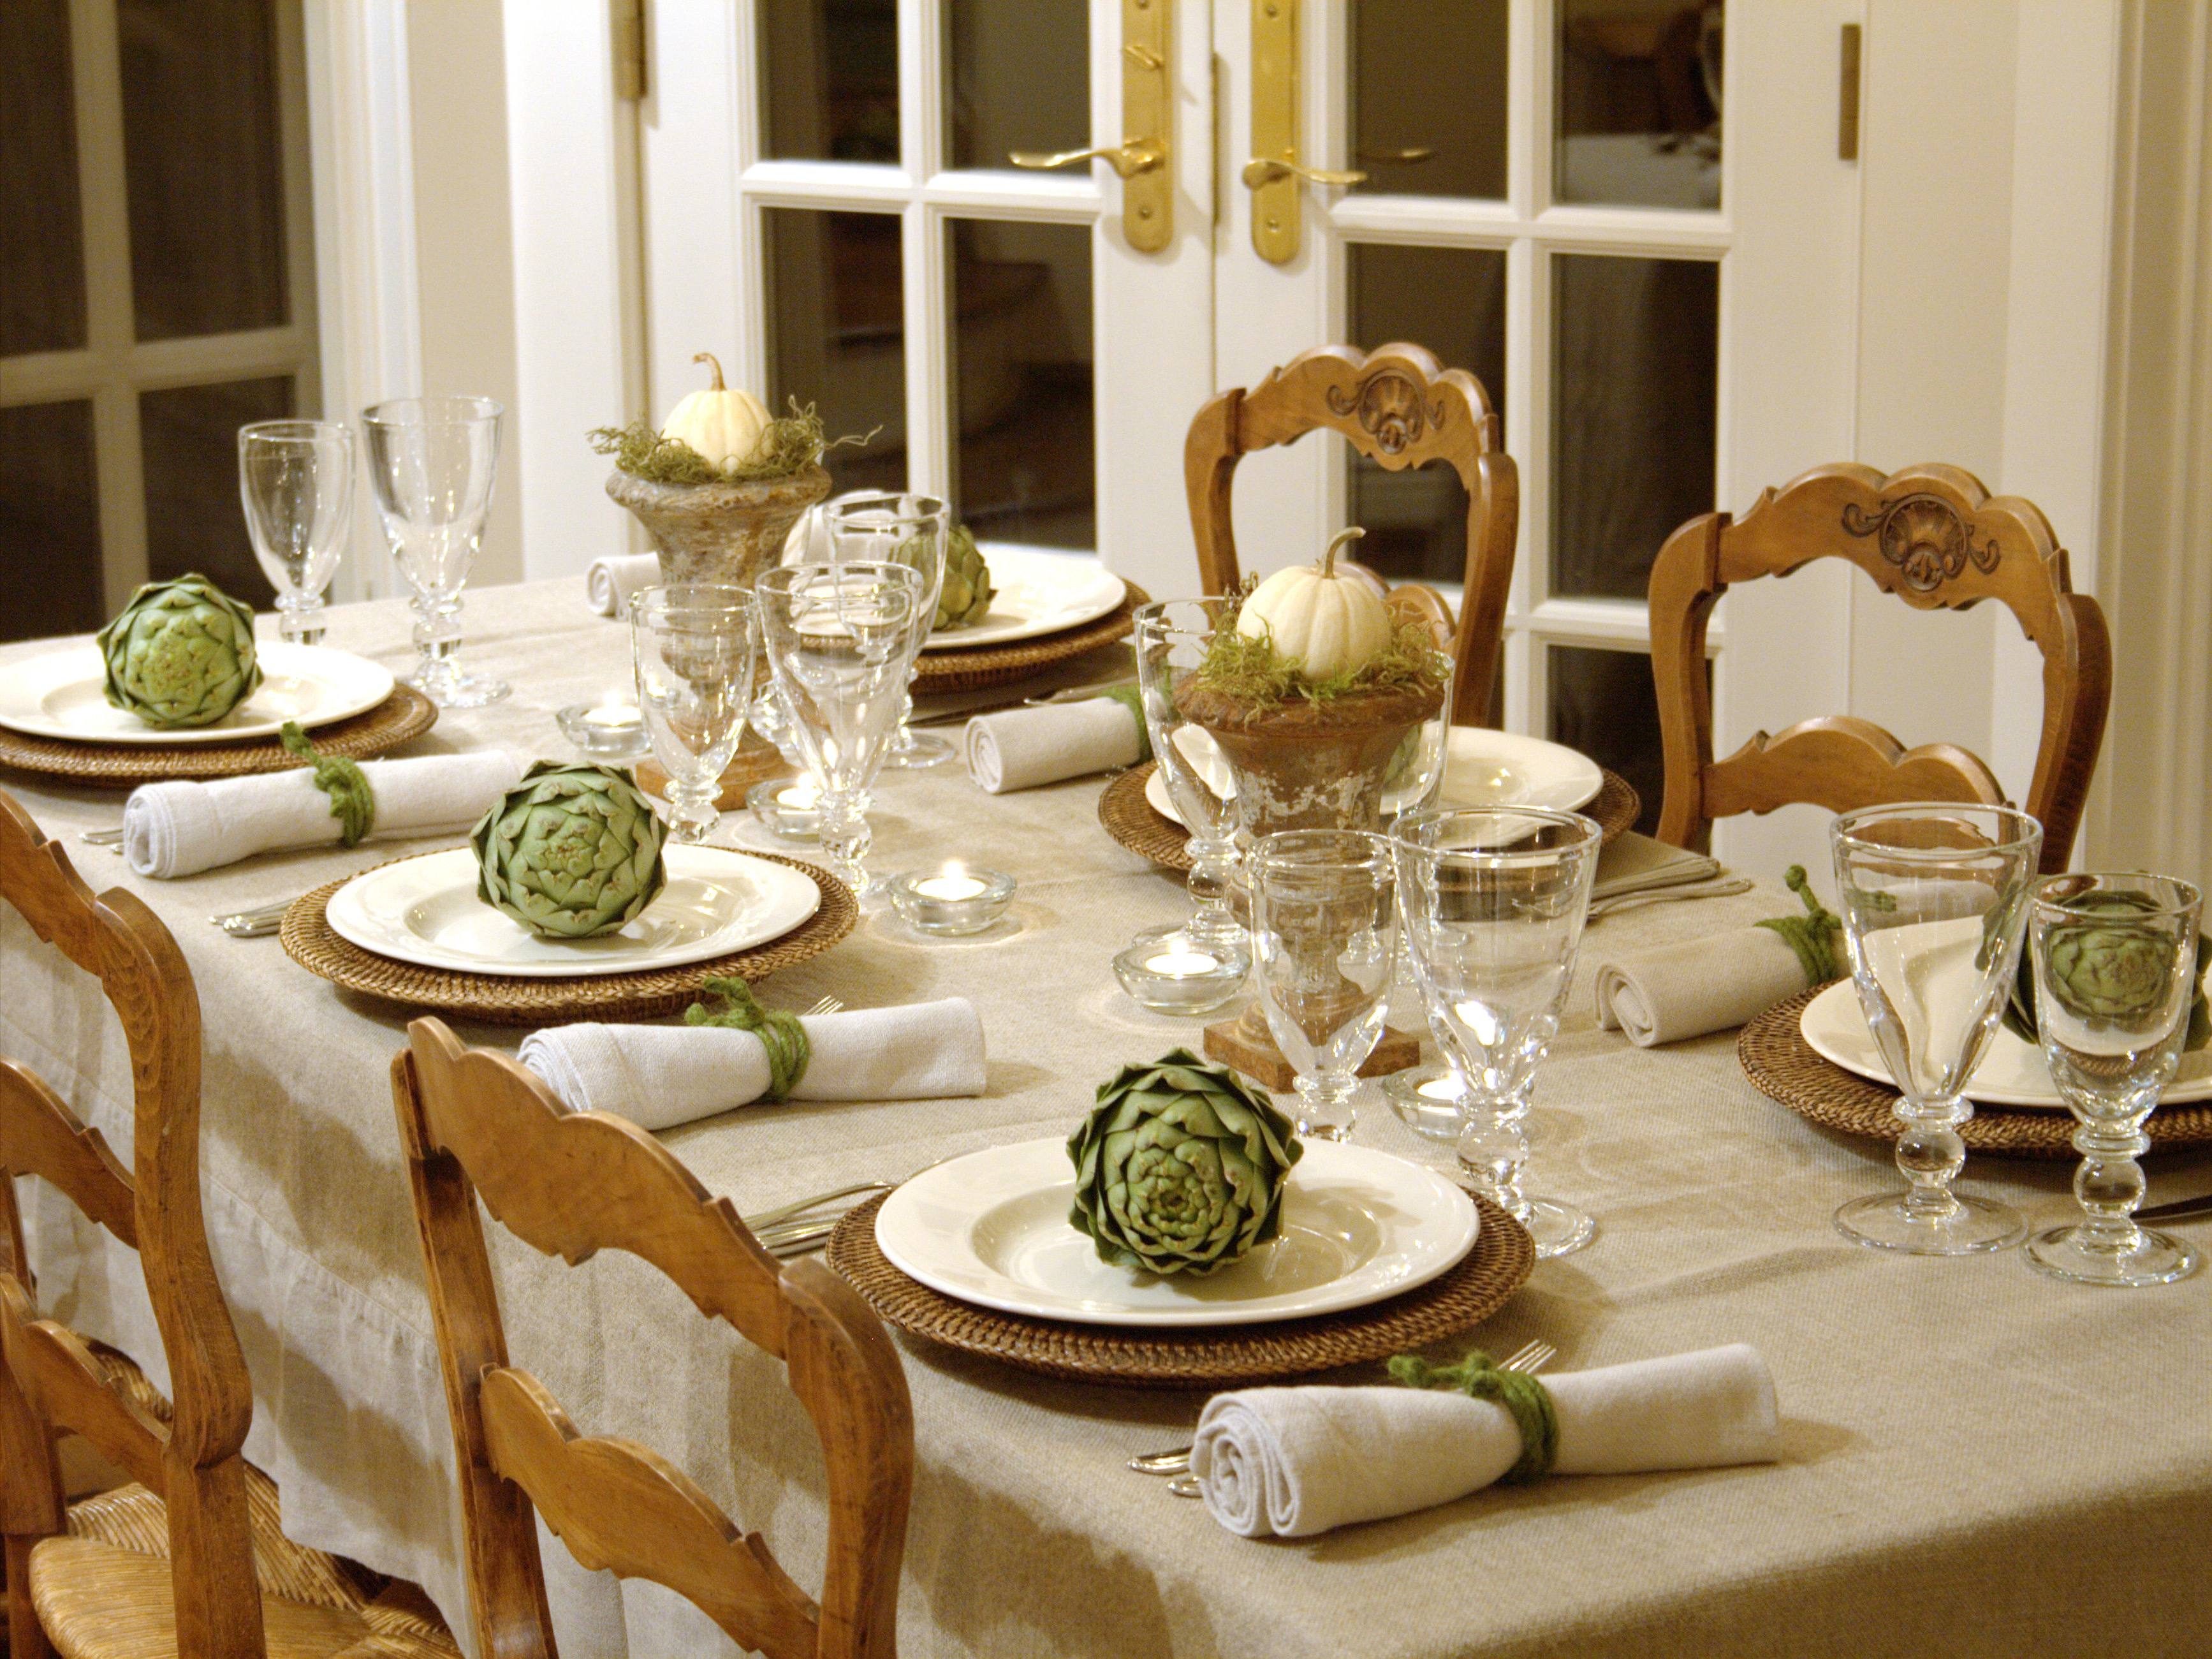 Rustic Dining Room Decor For Christmas (Image 27 of 32)